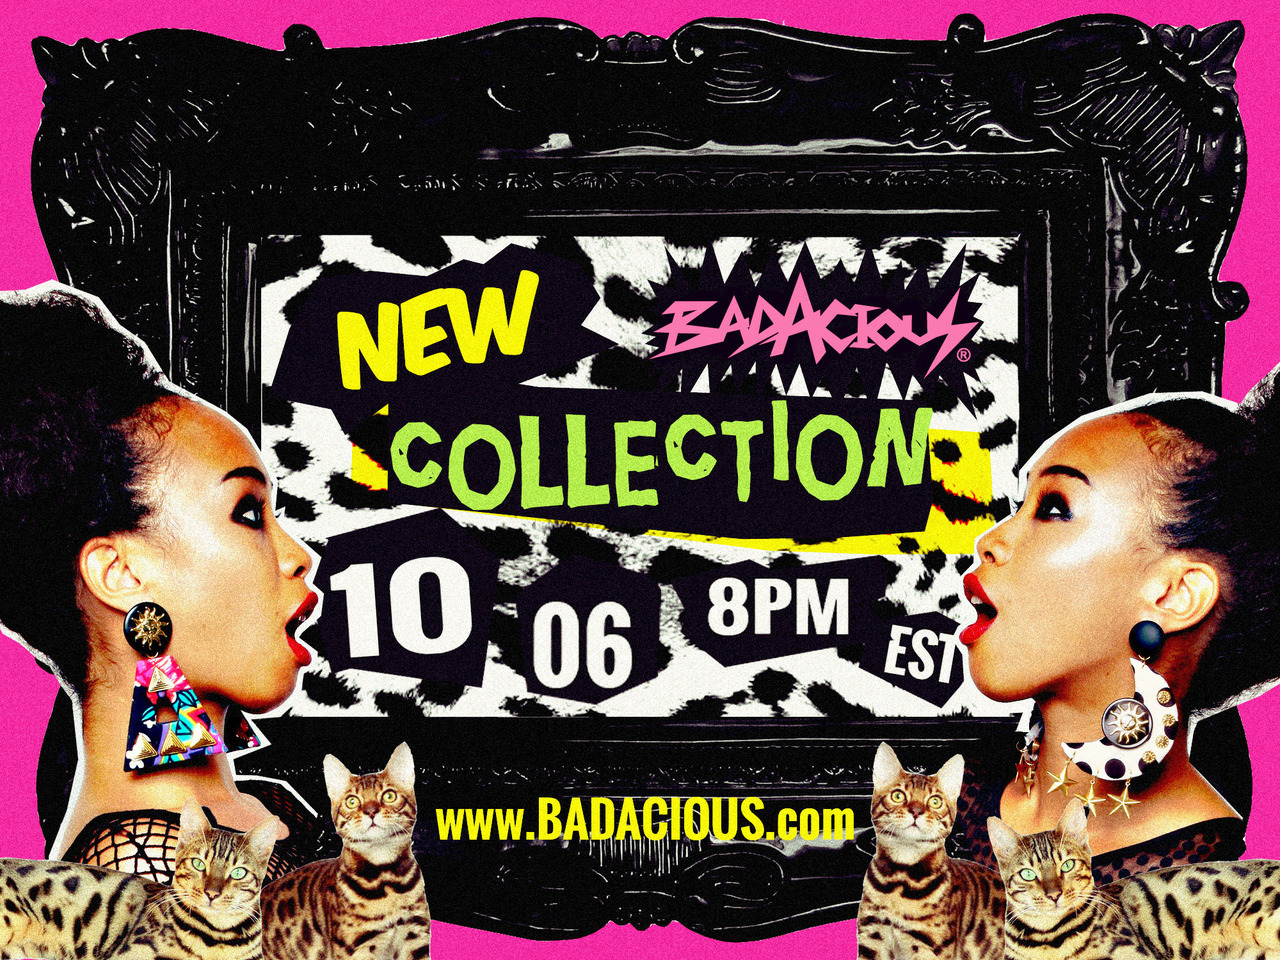 NEW COLLECTION LAUNCHES Oct.06.2012 8PM EST. www.BADACIOUS.com